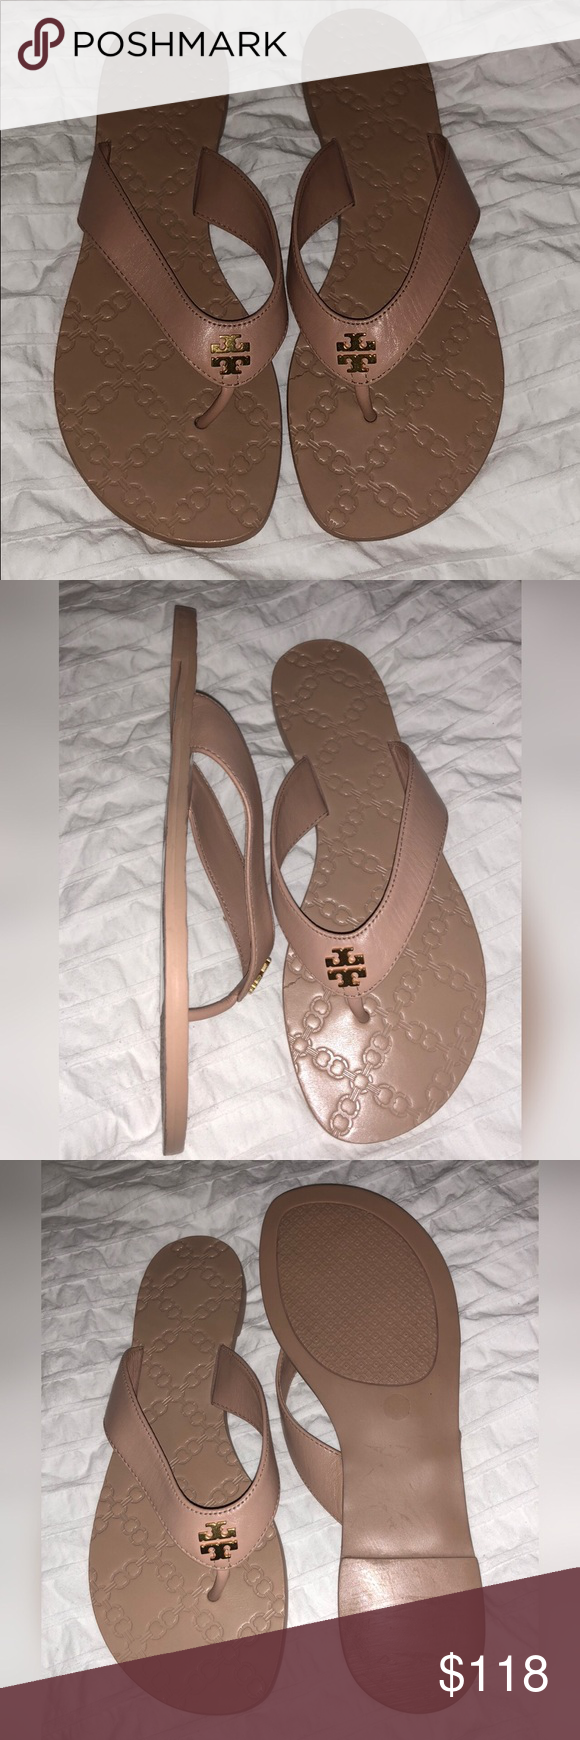 ab9c5e6a5f7 Tory Burch Monroe Flip Flop - Light Makeup Color Double T Logo - Leather  Strap - Rubber Soles - Color is Light Makeup Tory Burch Shoes Sandals